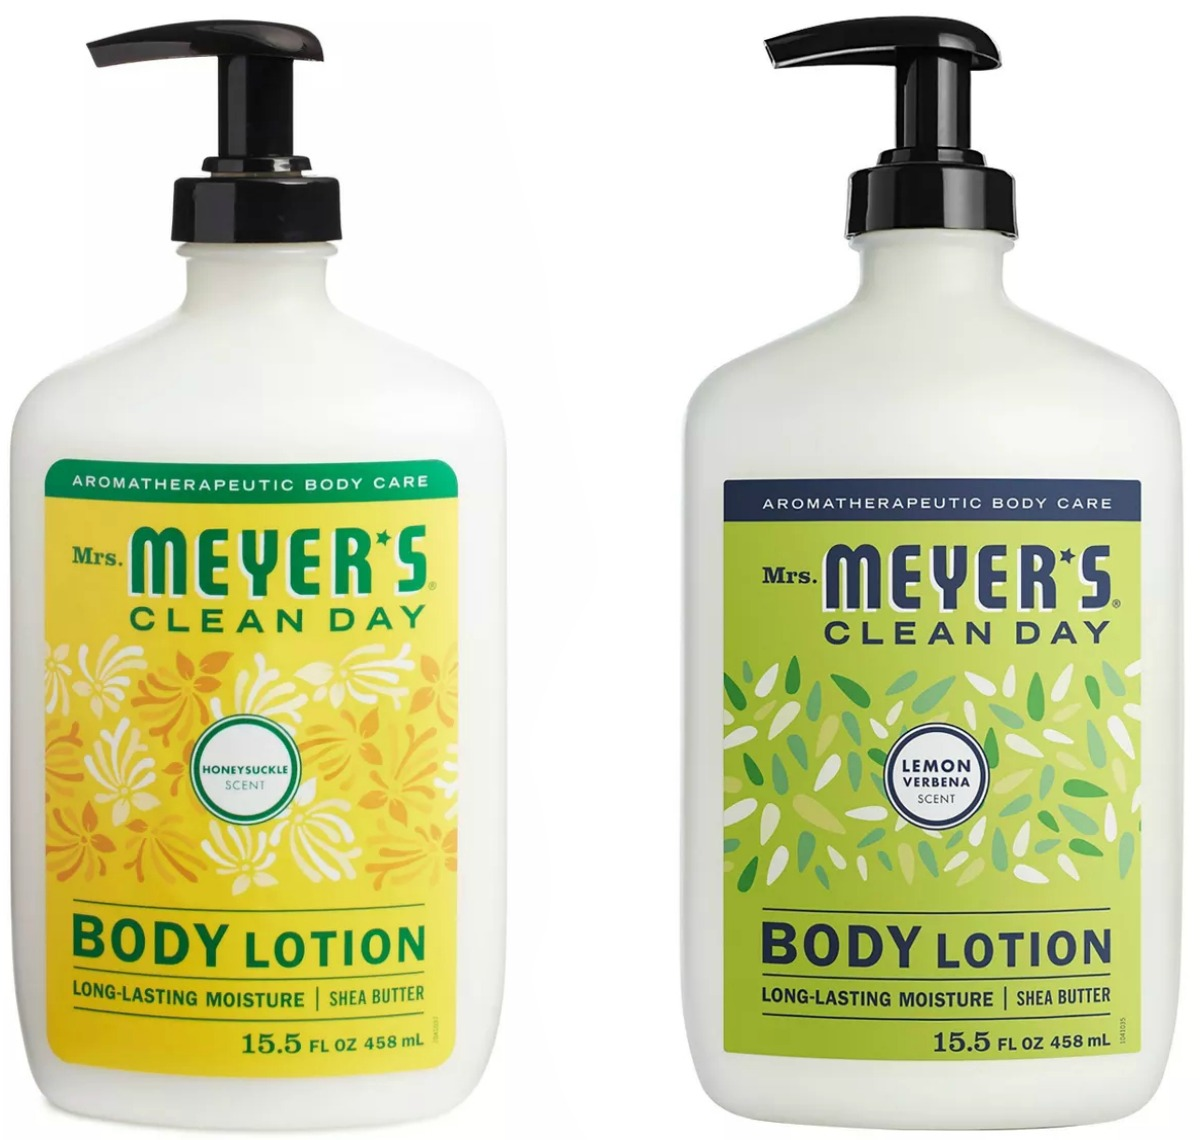 Two scents of natural body lotion in pump bottles